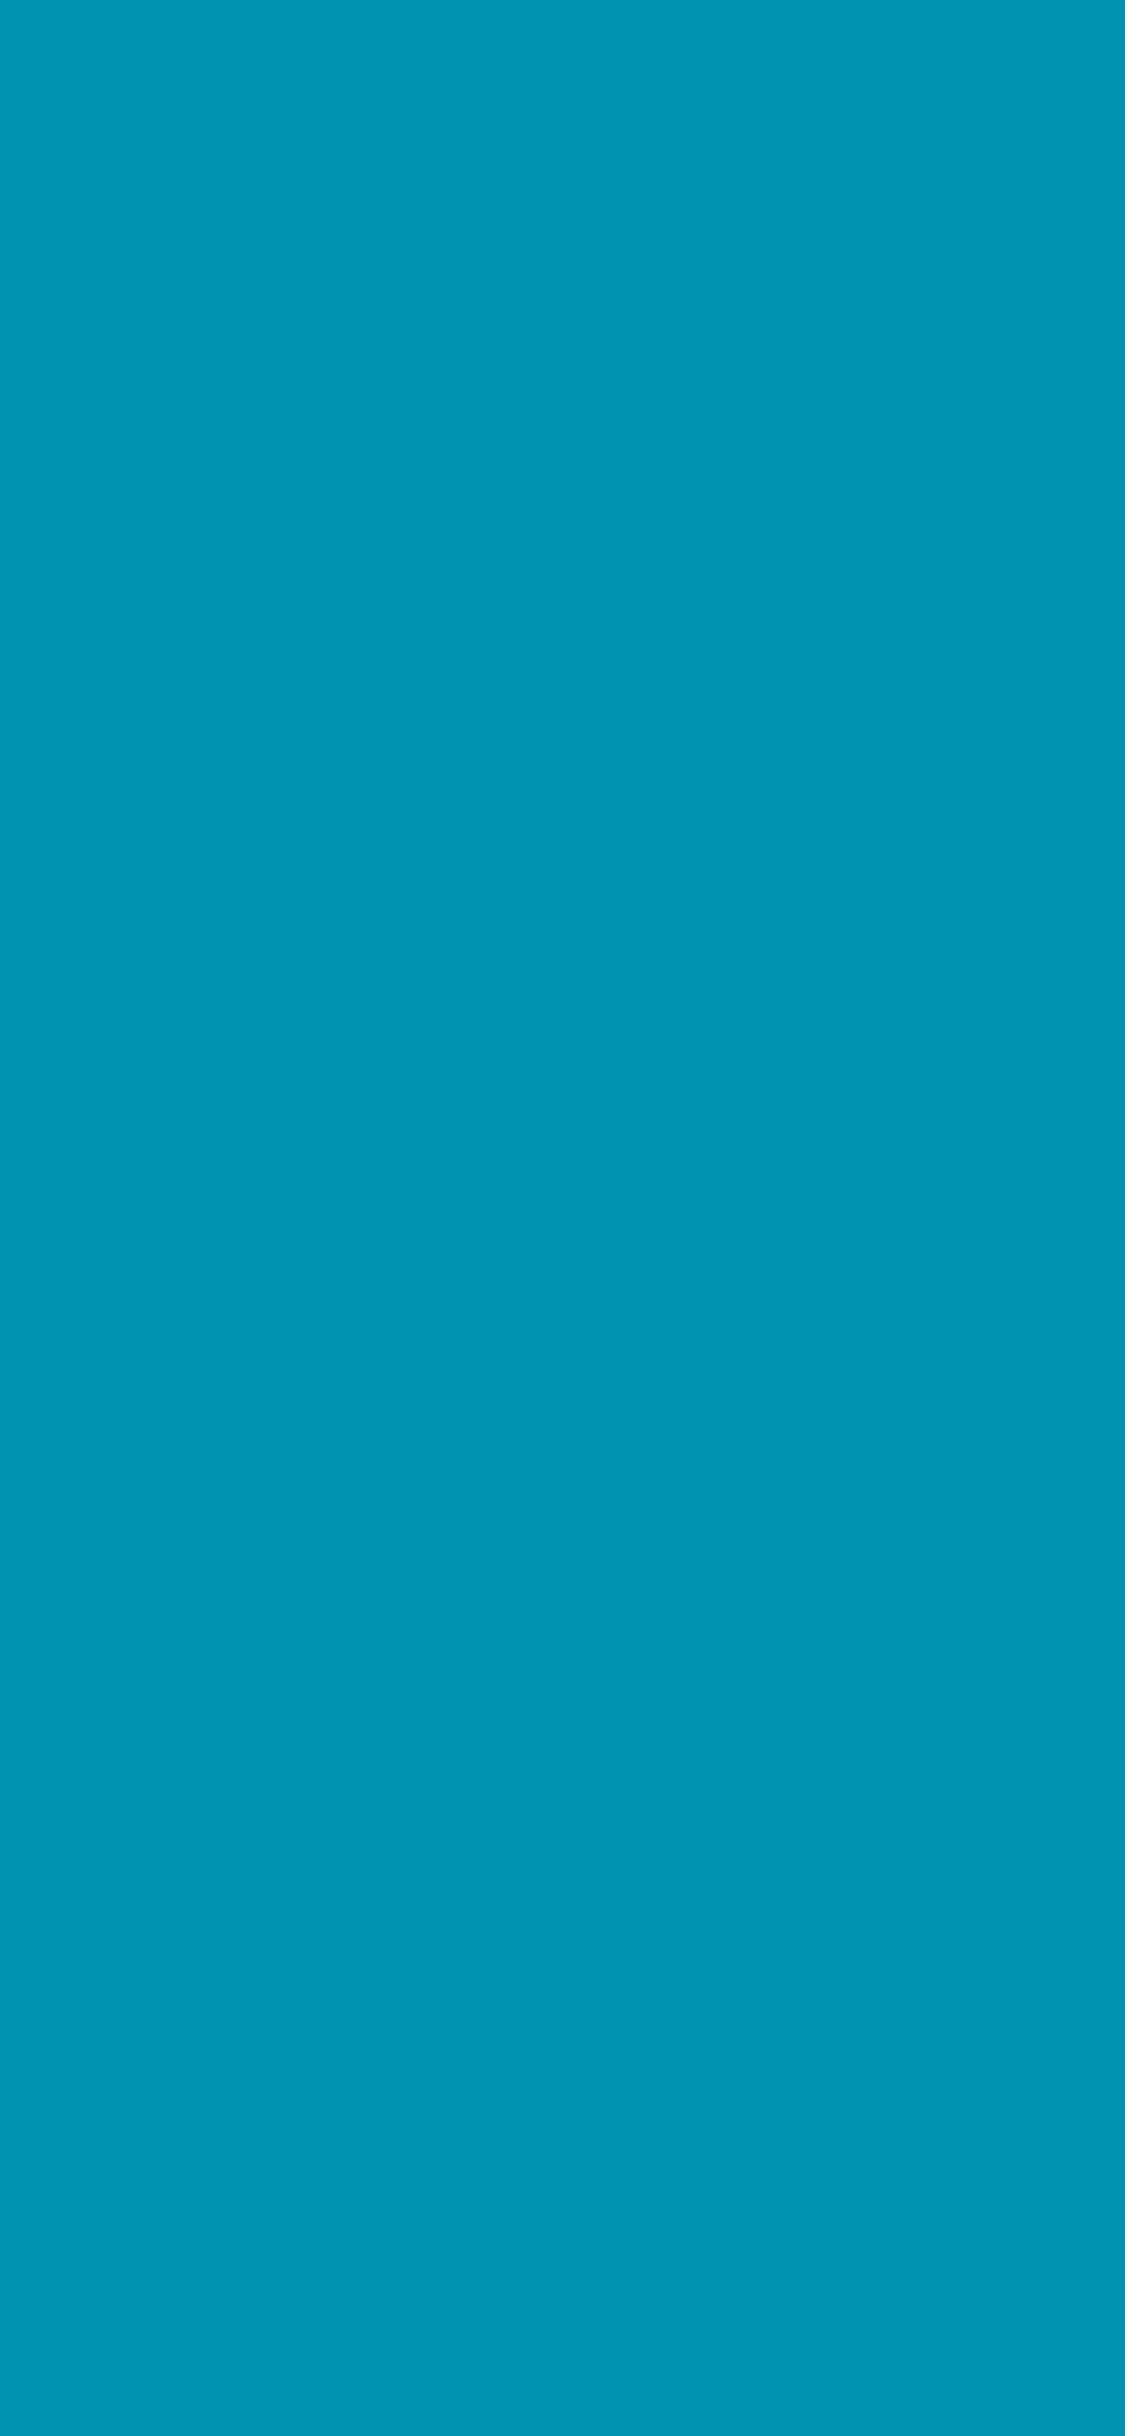 1125x2436 Blue Munsell Solid Color Background